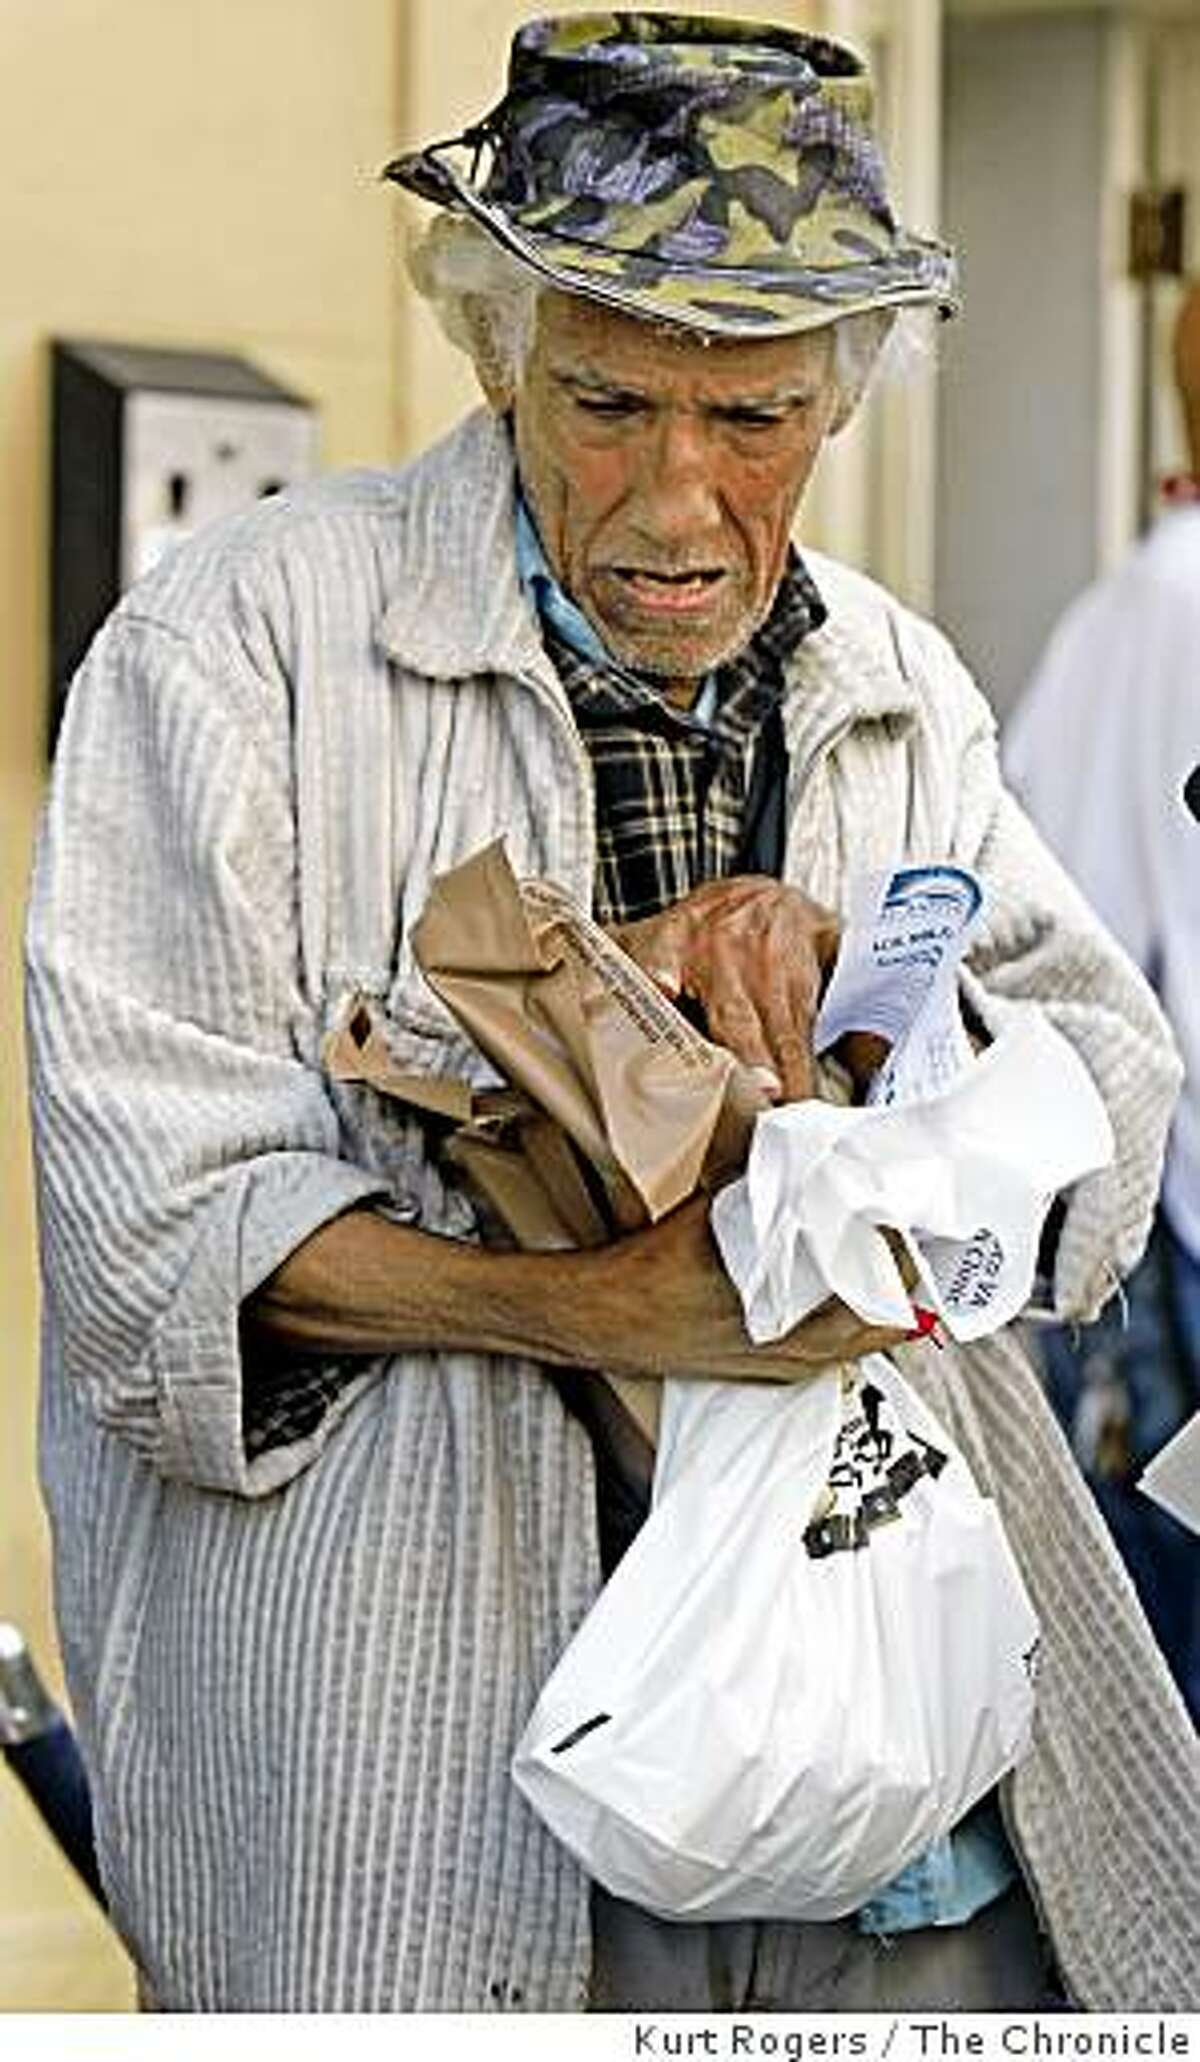 Alexandro Sedeno Leandro receives a gift pack from the St. Anthony's Foundation at a Veterans Day event on Tuesday Nov. 11, 2008 in San Francisco, Calif.